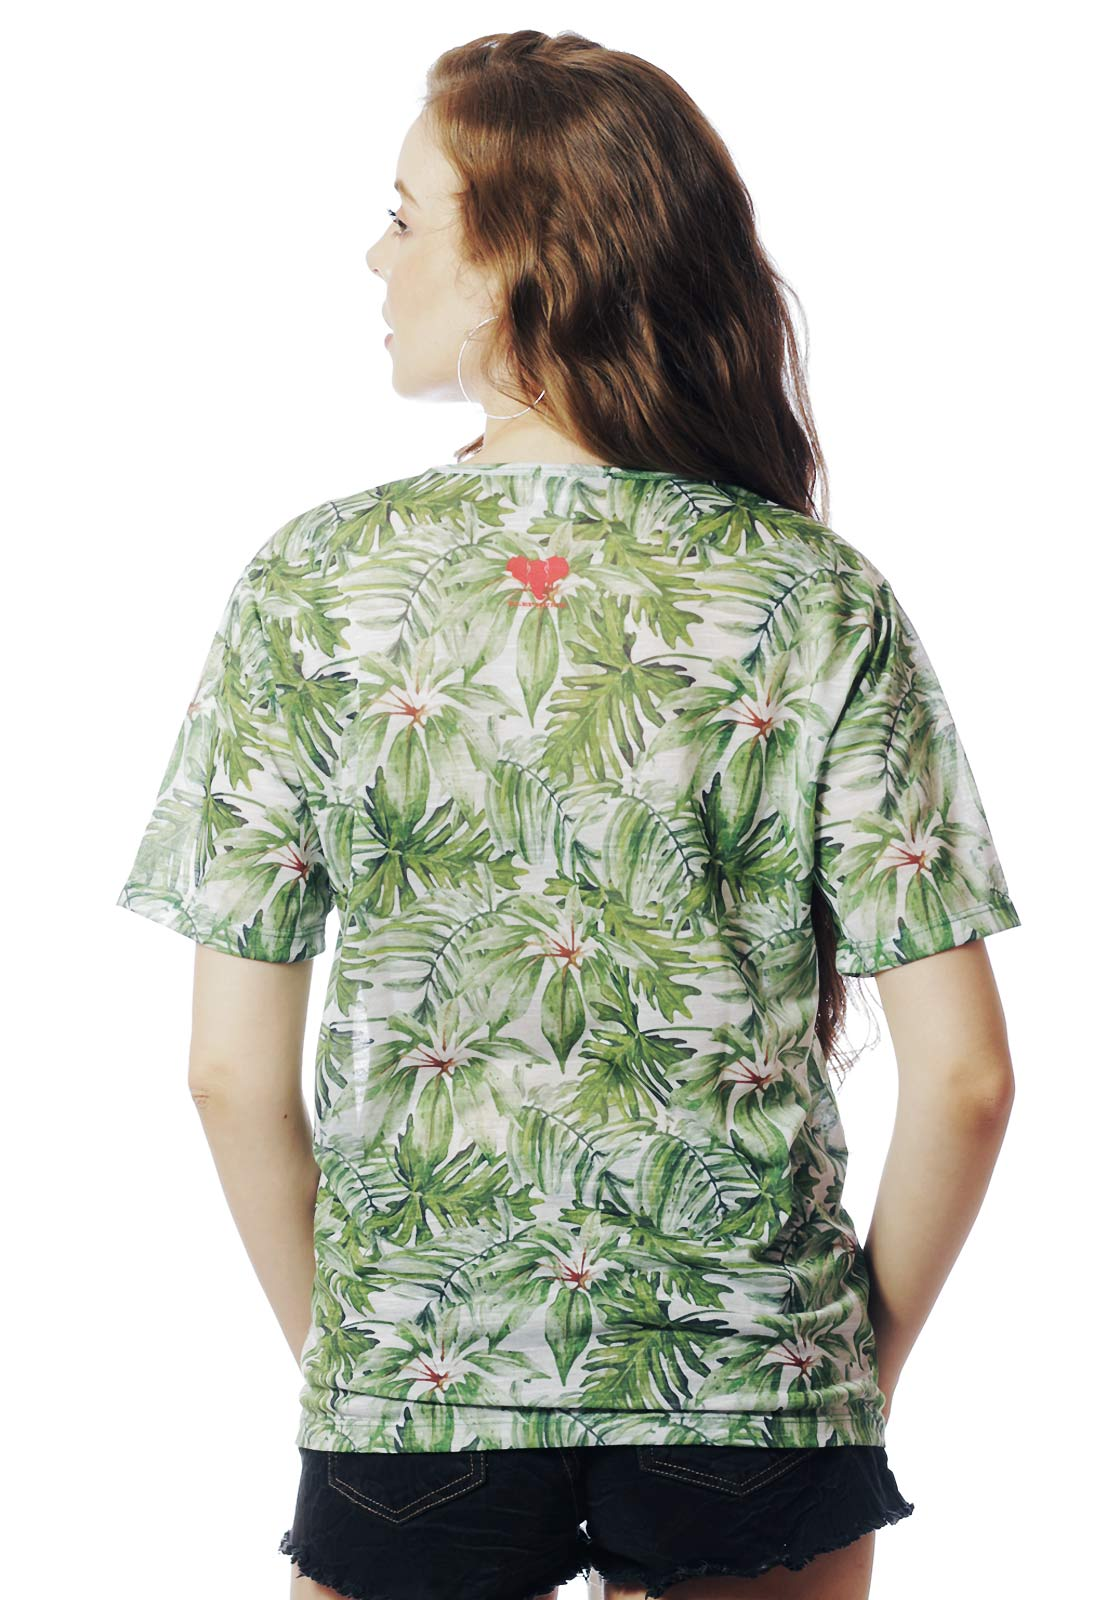 CAMISETA TROPICAL FUN ESTAMPADA FULL PRINT UNISSEX VERDE